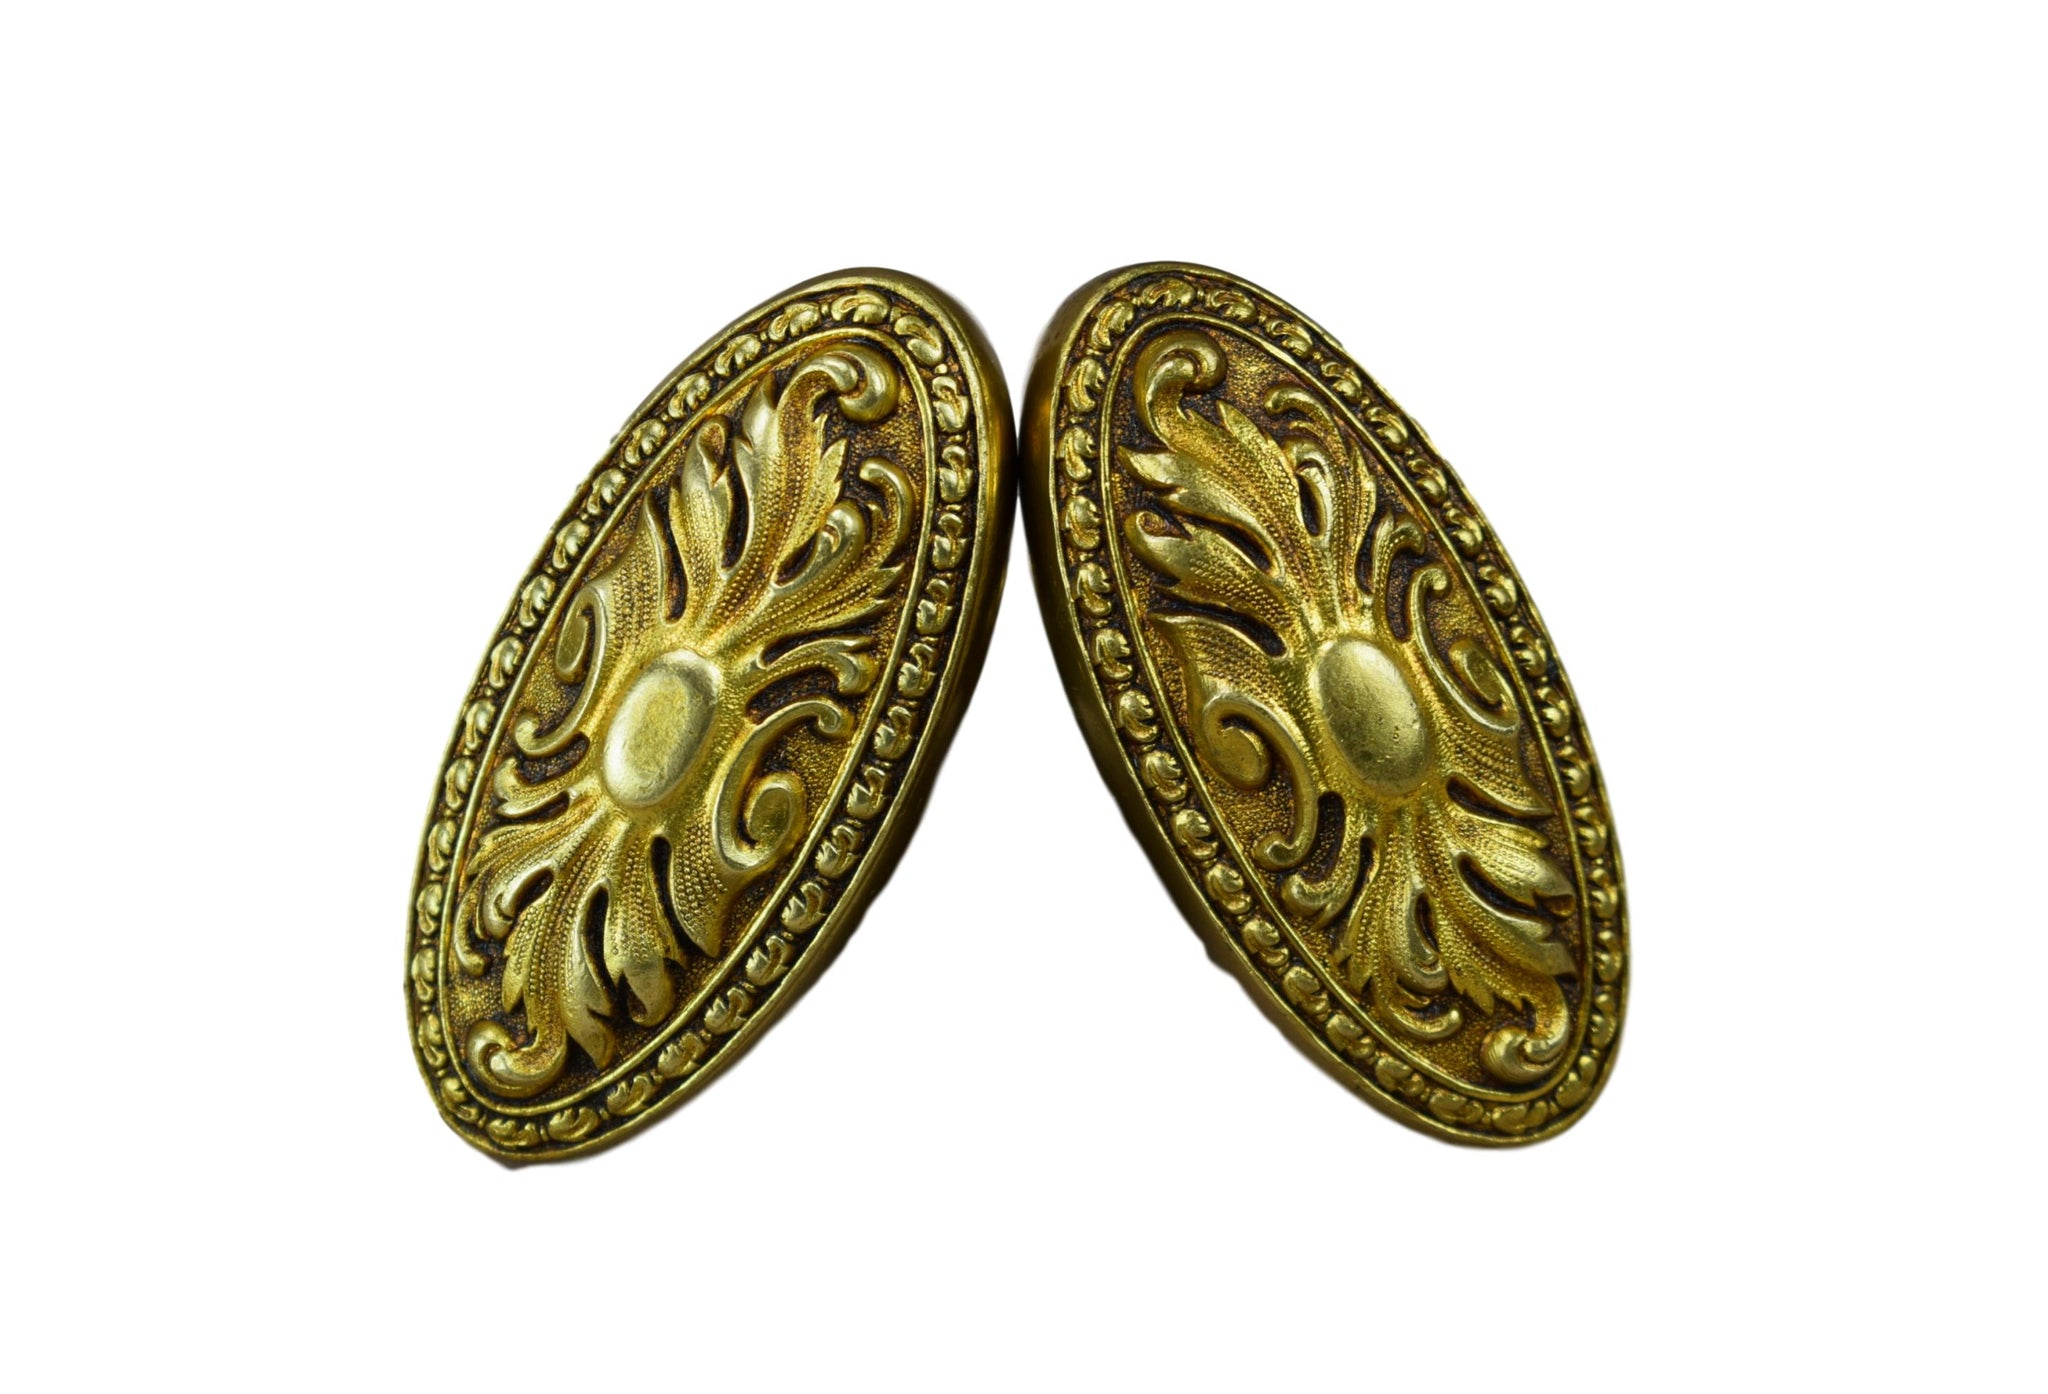 RARE Antique French PAIR of Ormolu Bronze Knobs, Door Handles, Salvaged Door Hardware, Home Renovation